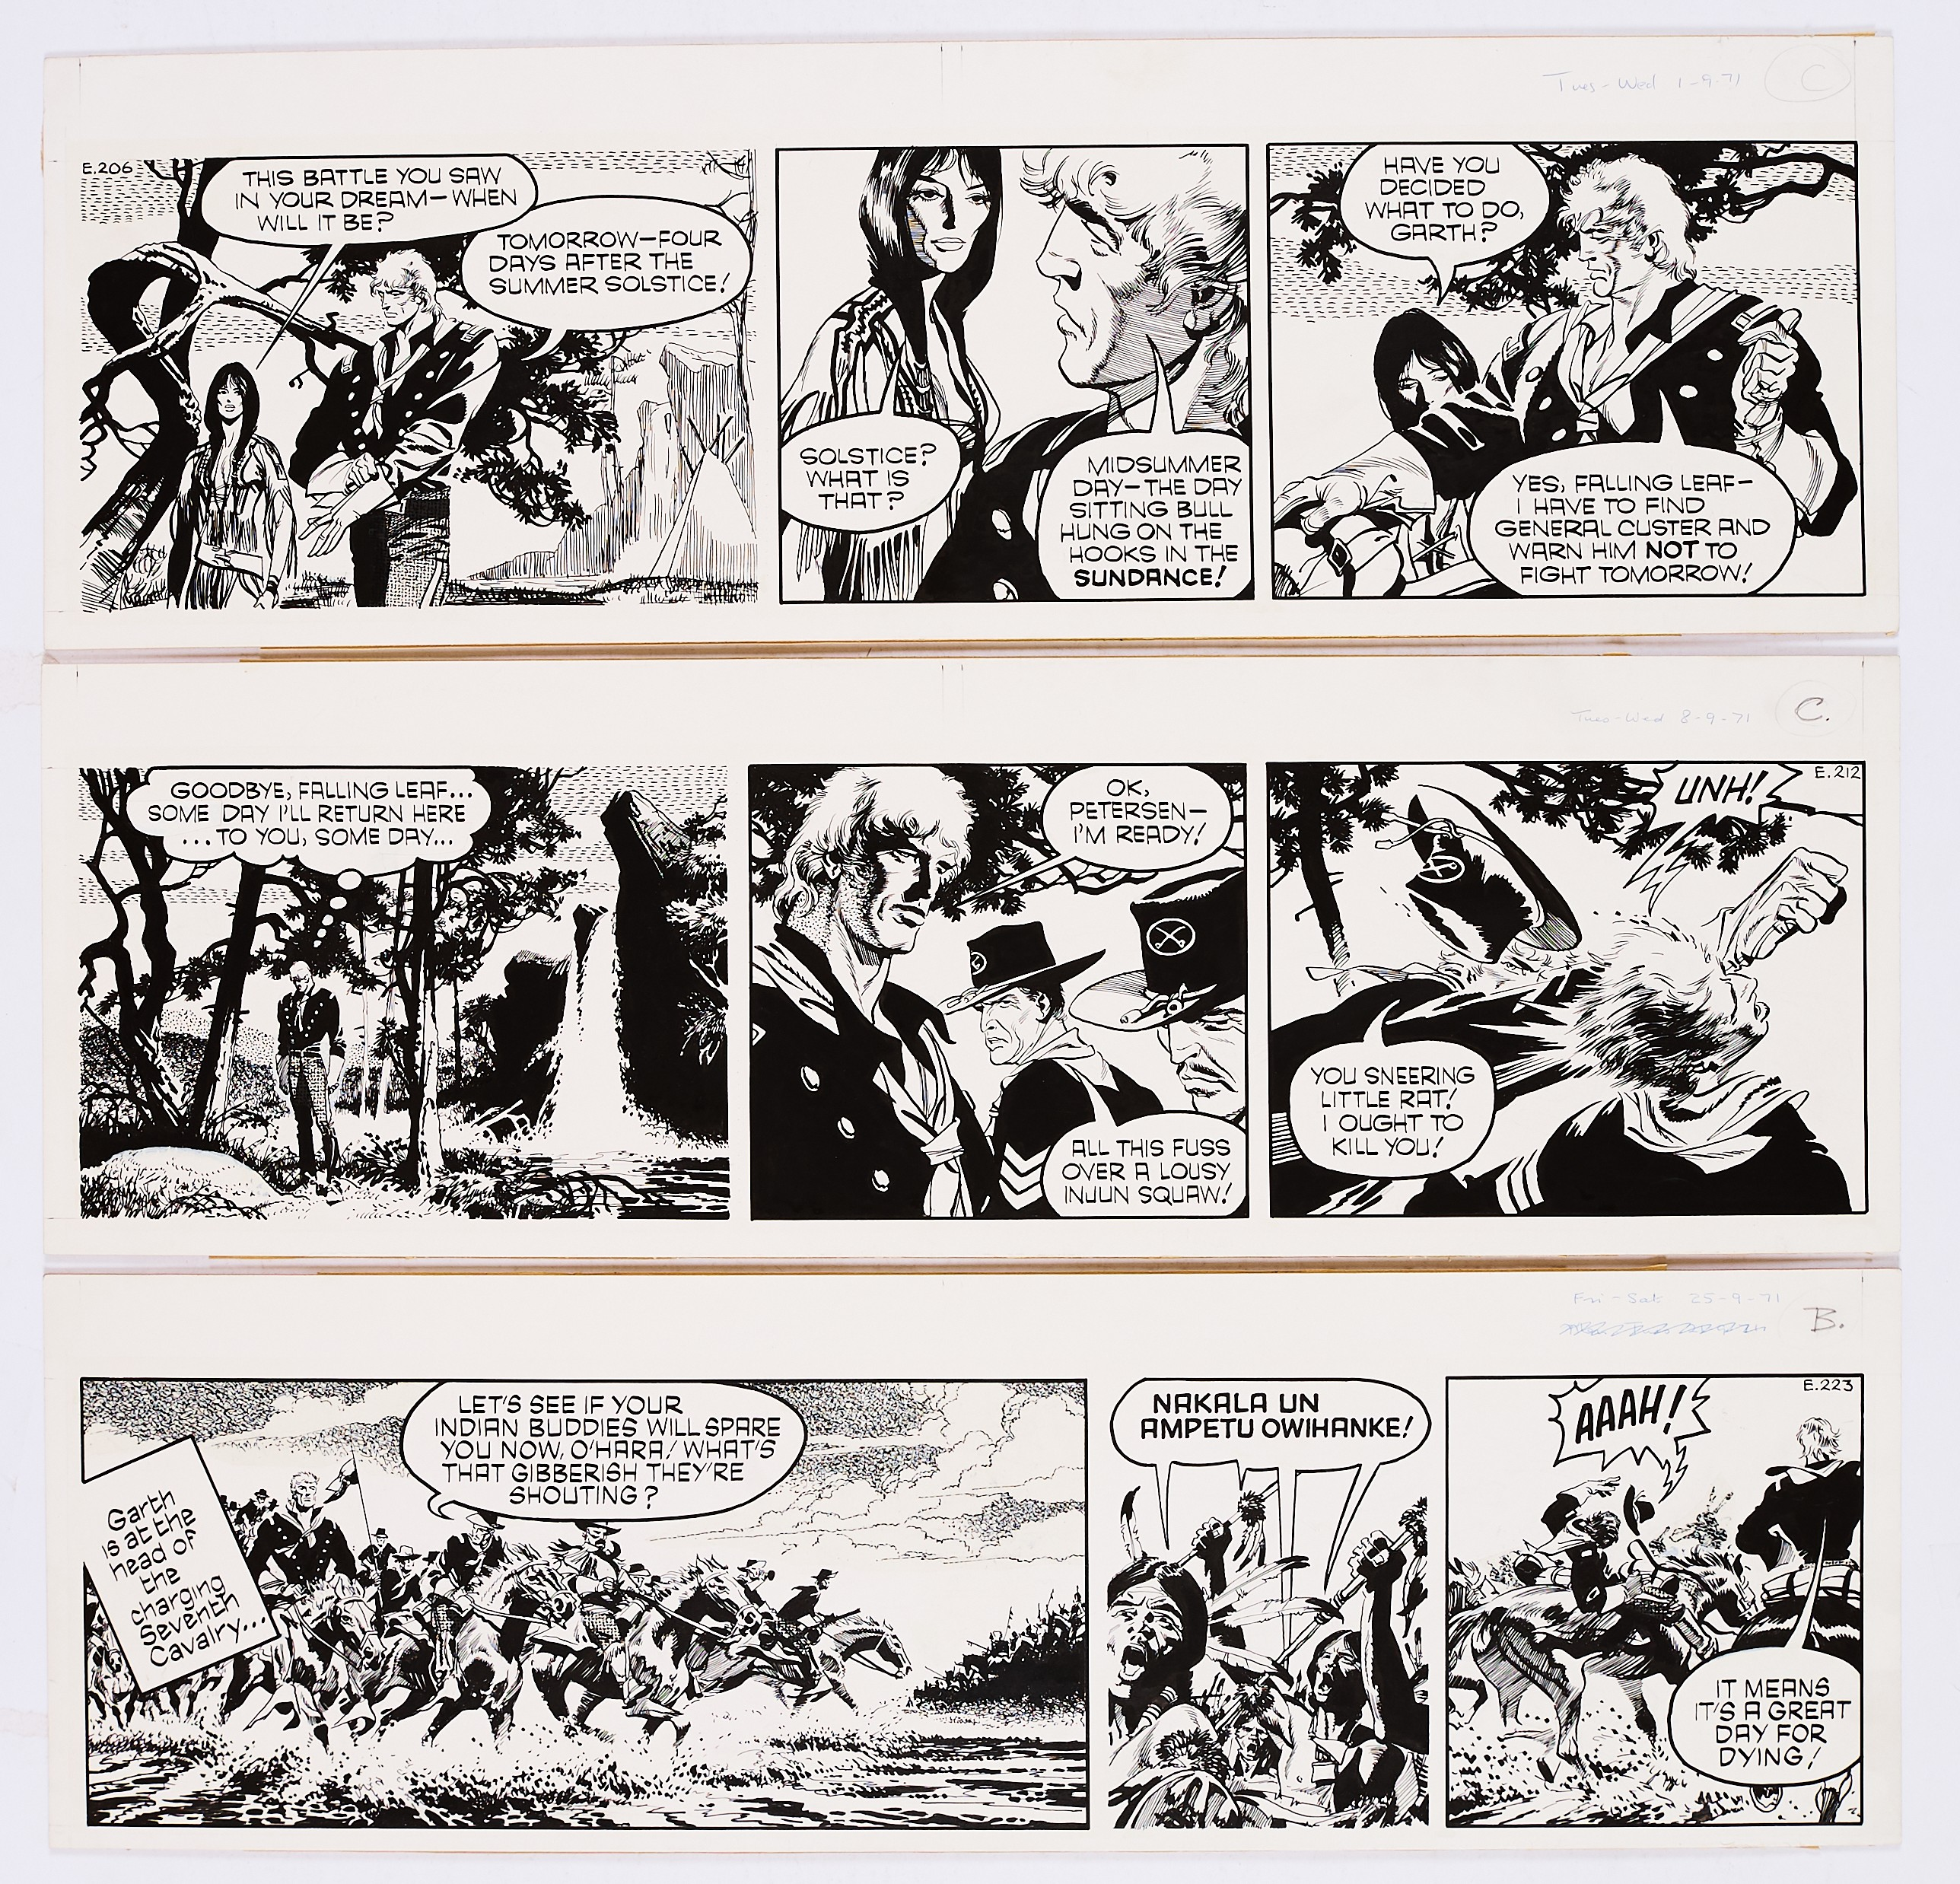 Garth: 3 original artworks (1971) by Frank Bellamy from the Daily Mirror 1st/8th/25th September